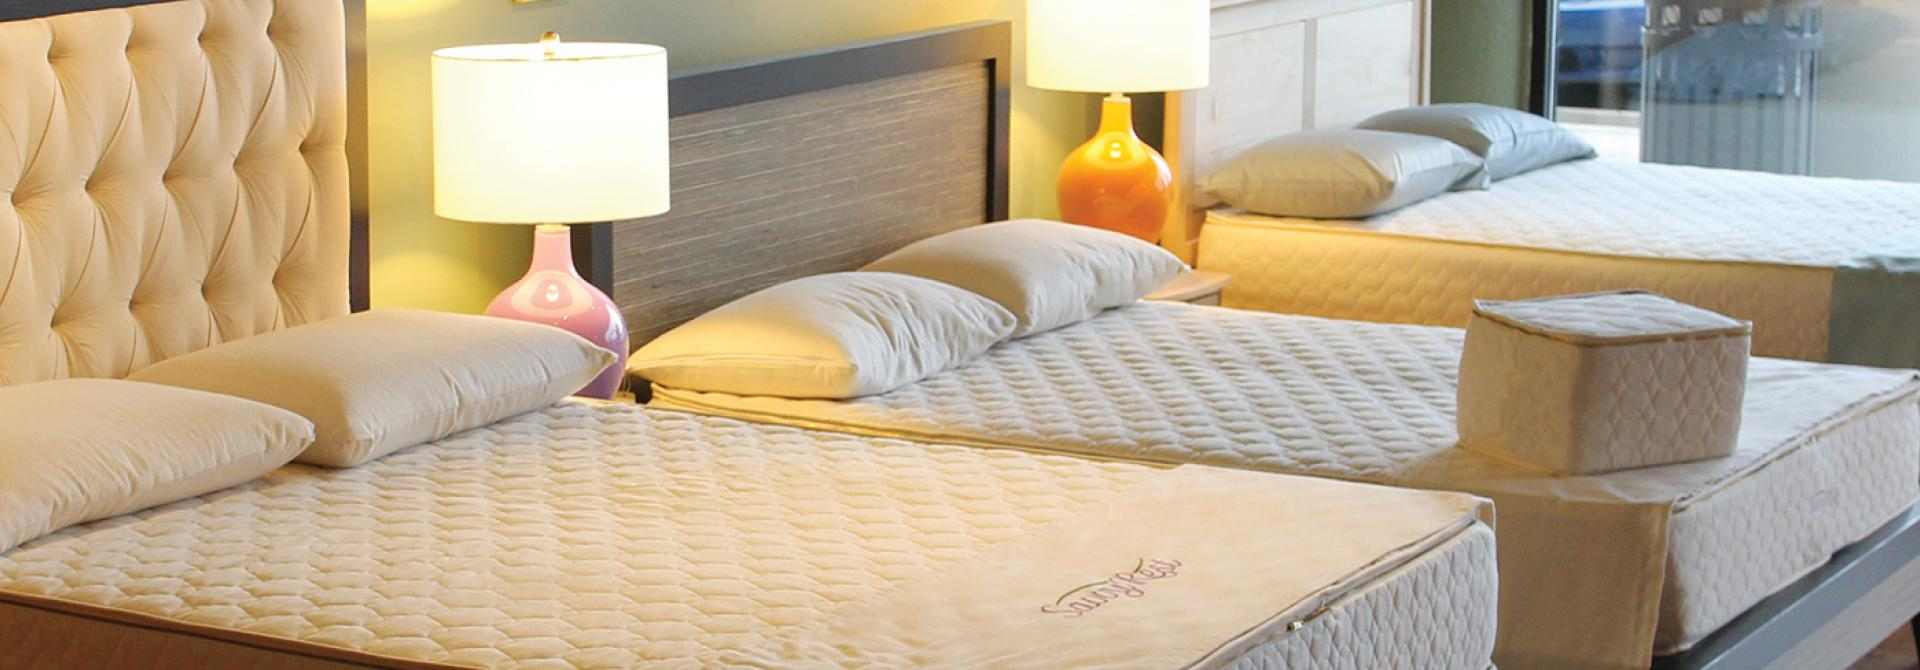 Organic Mattresses In The DC Metro Area Savvy Rest Natural Bedroom - The natural bedroom